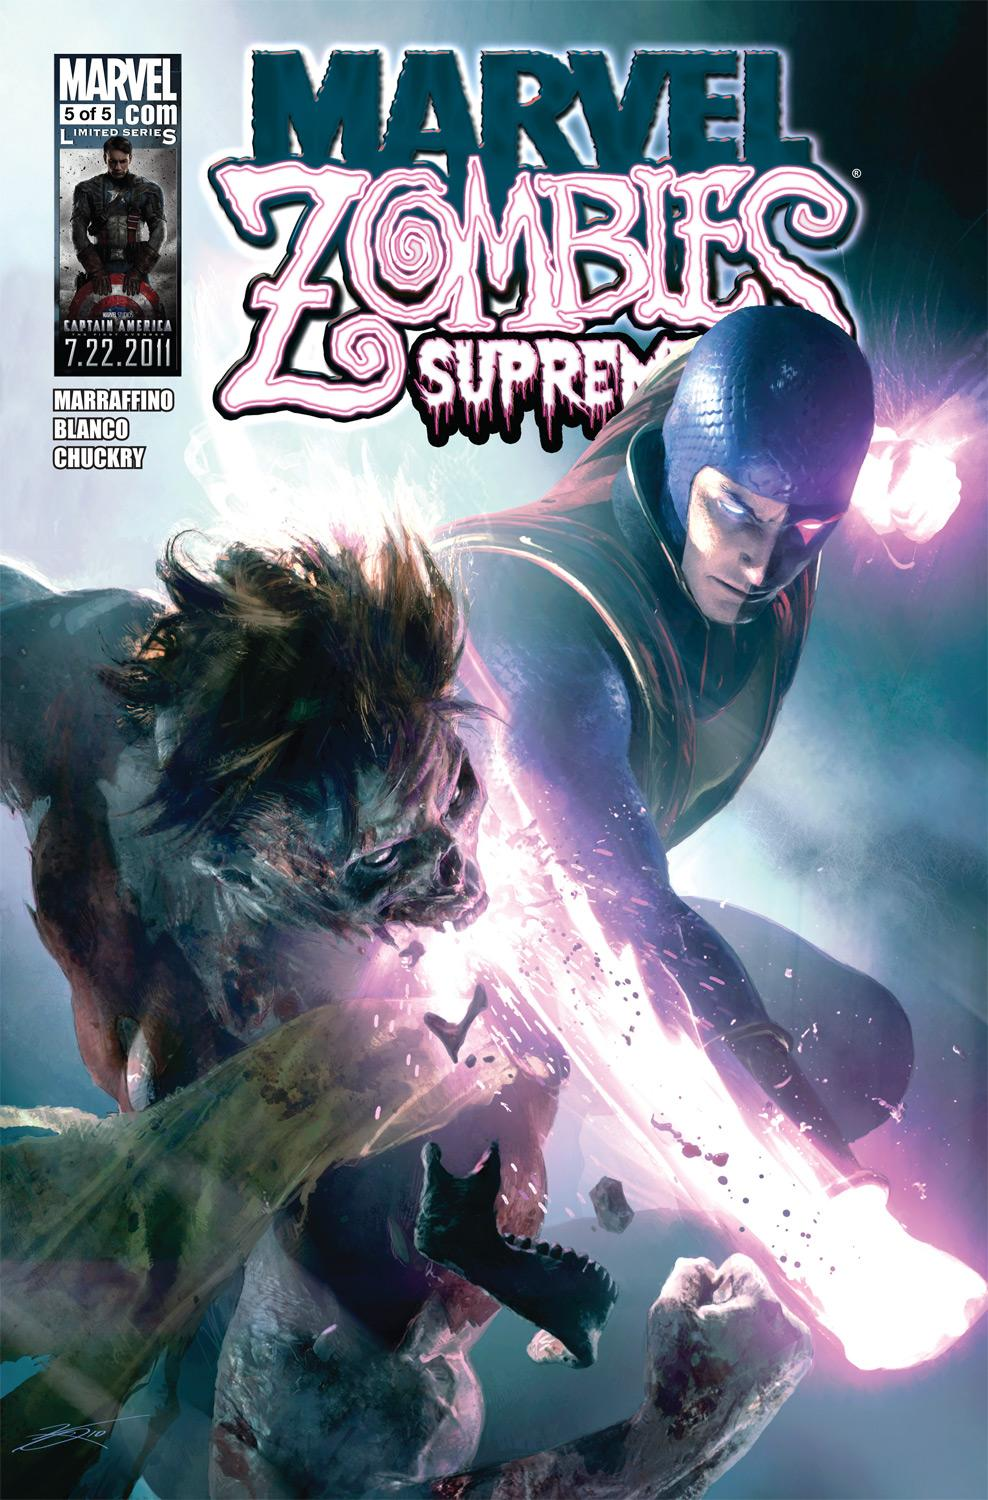 Marvel Zombies Supreme (2010) #5